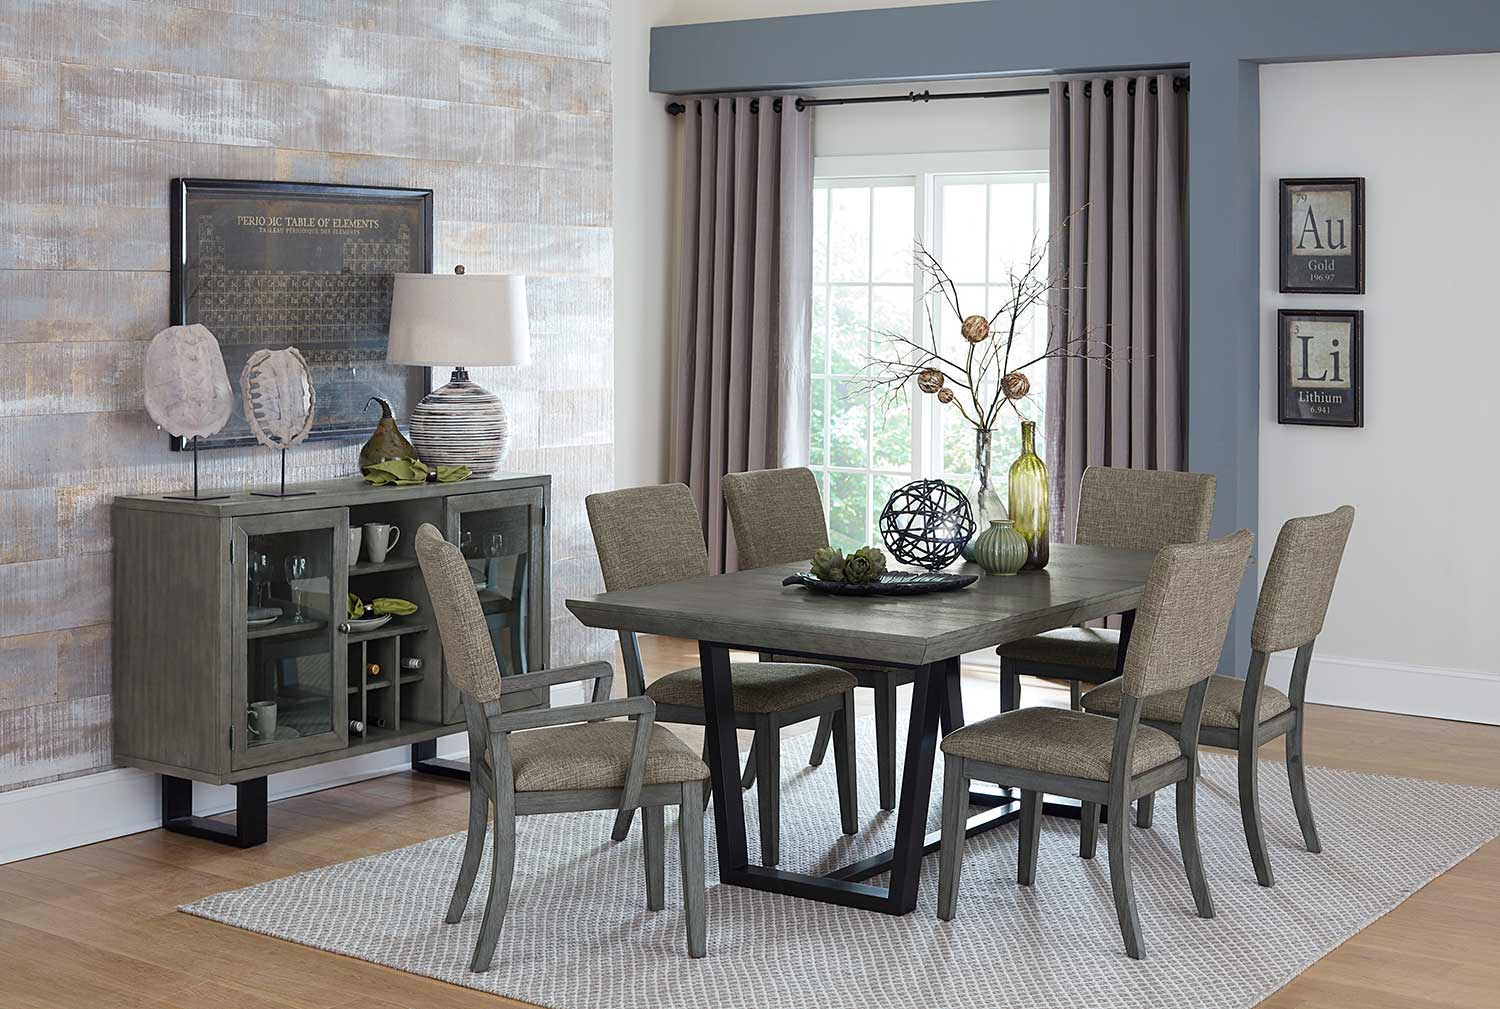 Homelegance Avenhorn Dining Set - Gray - Black Metal